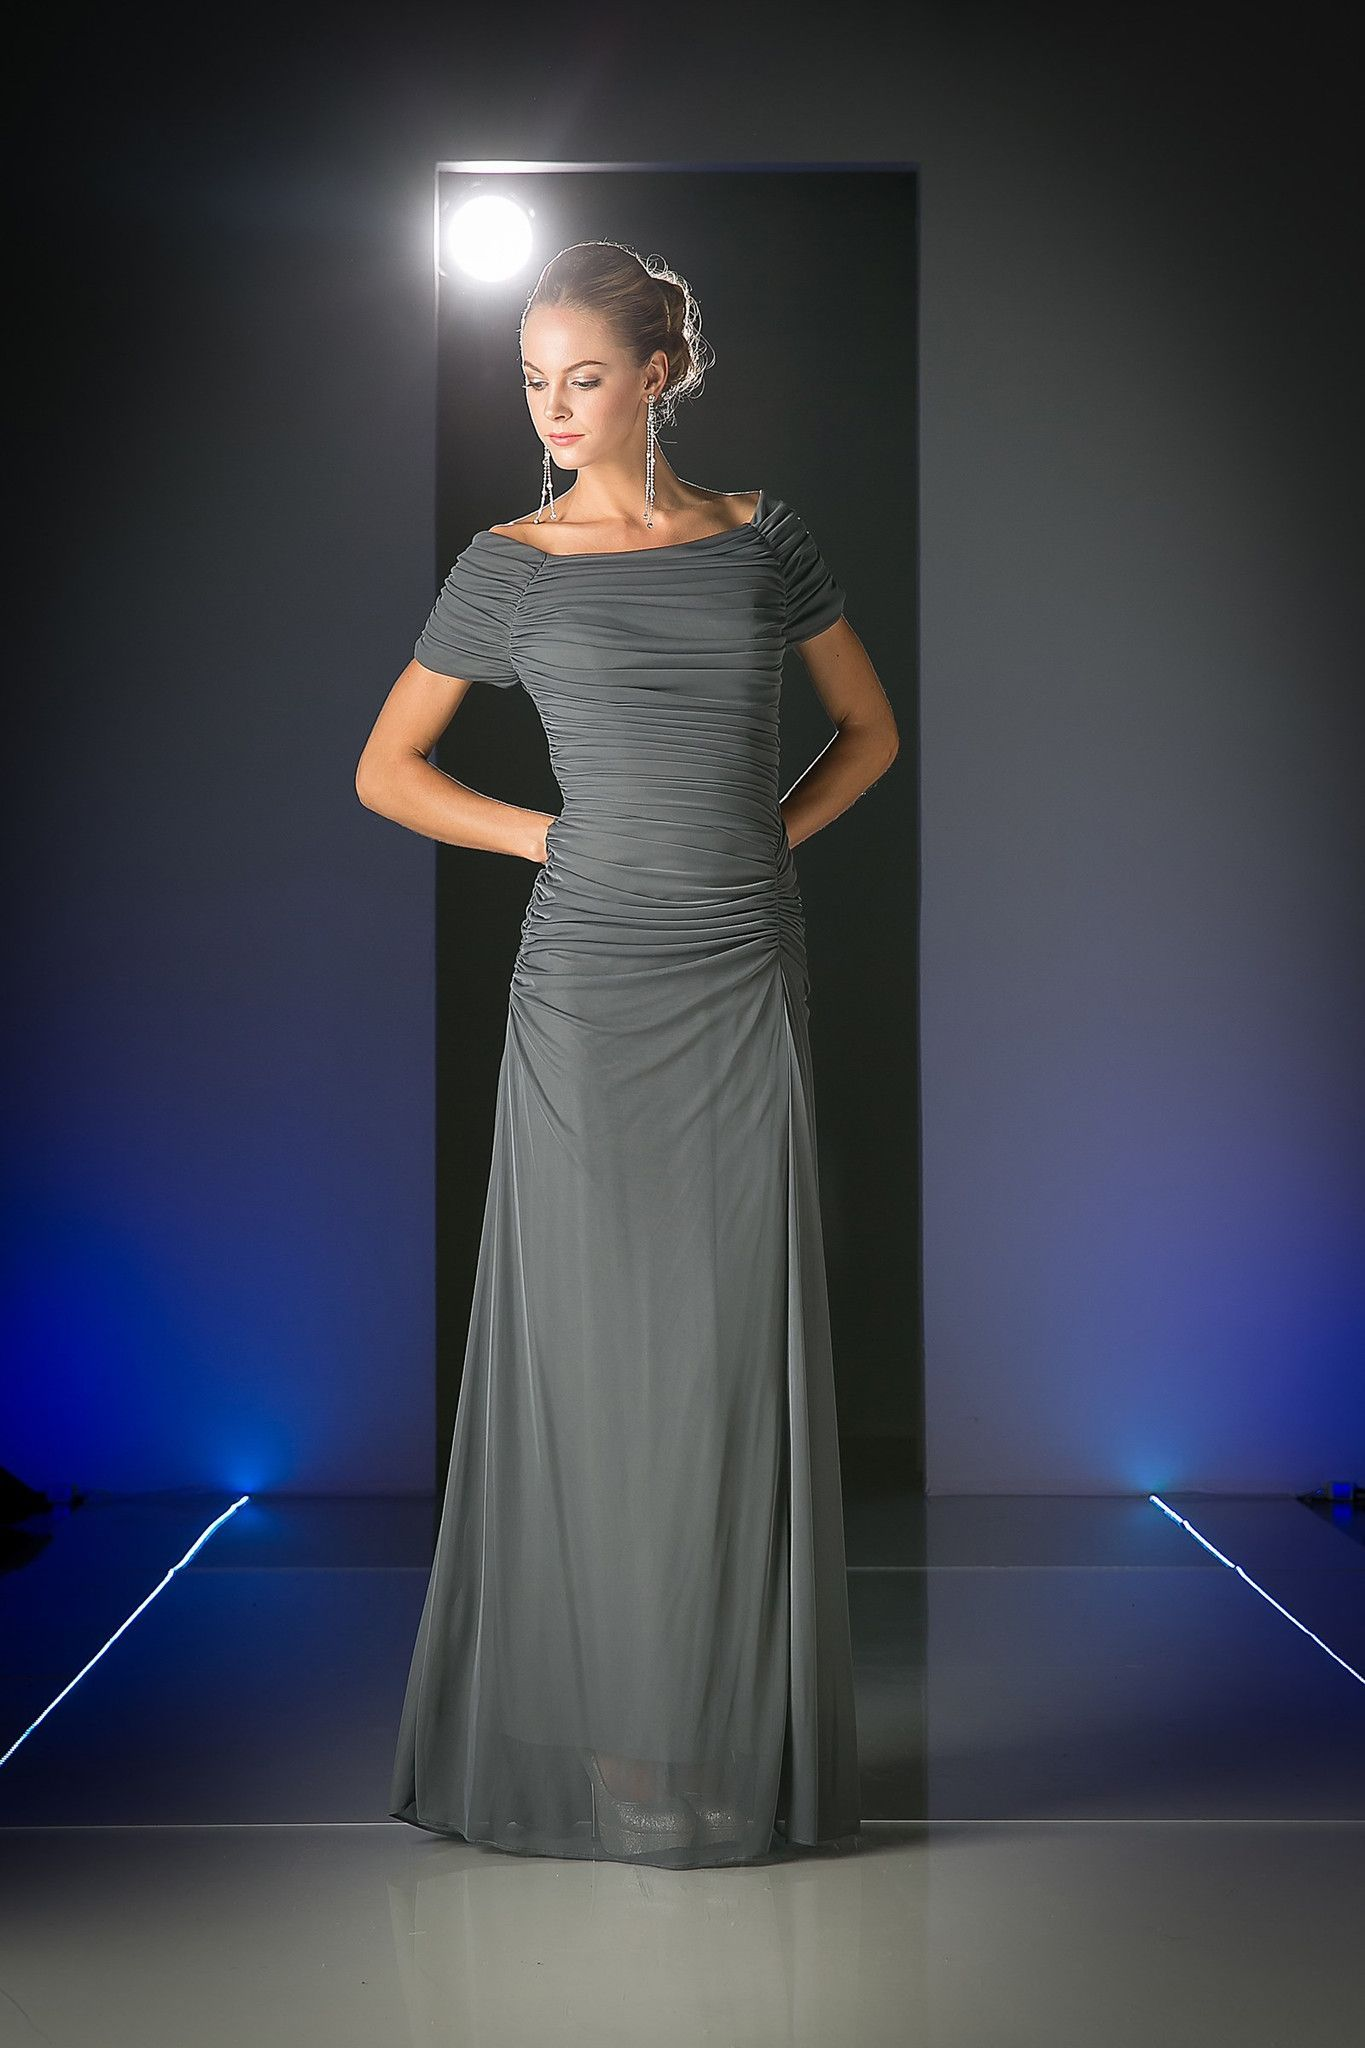 Mothers dress for wedding plus size  Elegant Unique Mother of the Bride Dress Formal Charcoal  Dress